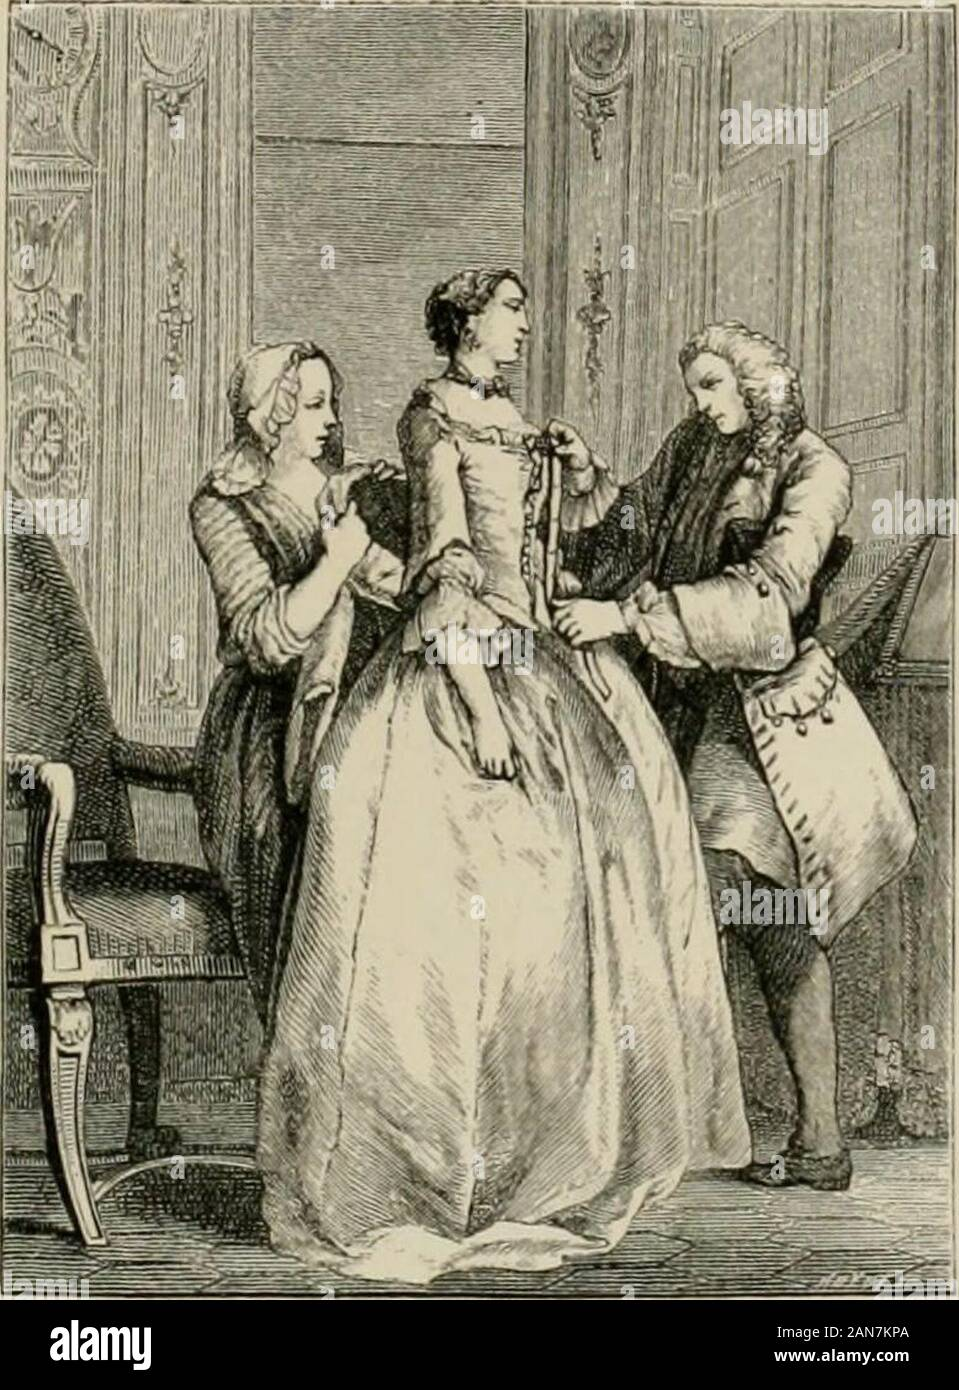 The XVIIIth century; its institutions, customs, and costumes France, 1700-1789 . a la Henri IV. for men did not fare anybetter, though the leaders of fashion, at the request of the ComtedArtois and Marie-Antoinette, endeavoured to Introduce it, as aCourt-dress, at the private entertainments given by the Princes ofblood. The Comte de Segur, who took part In them, says : Thiscostume was well enough for young men, but It did not at all suitmiddle-aged men, especially If they were short and Inclined to corpu-lence. The silk mantles, the feathers, ribbons, and brilliant colours,made them look ridic Stock Photo